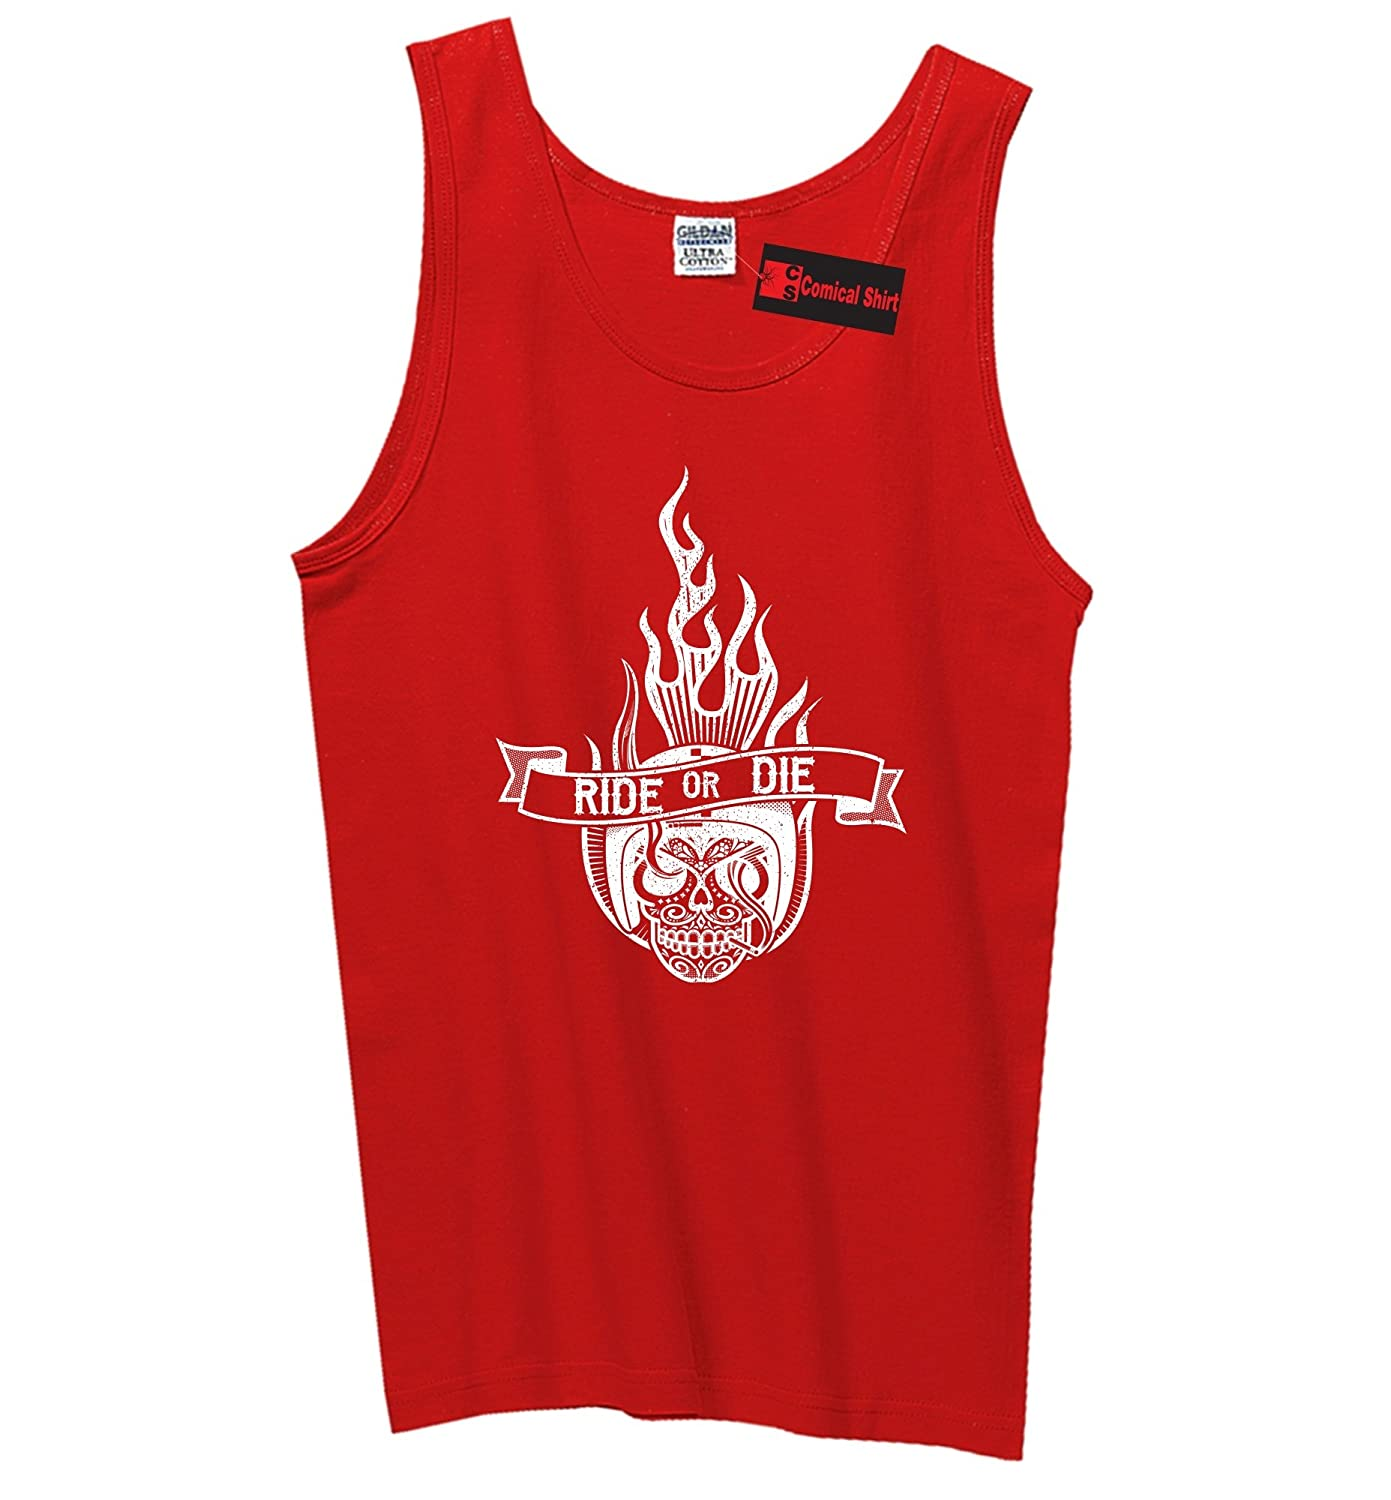 Comical Shirt Mens Ride Or Die Tank Top